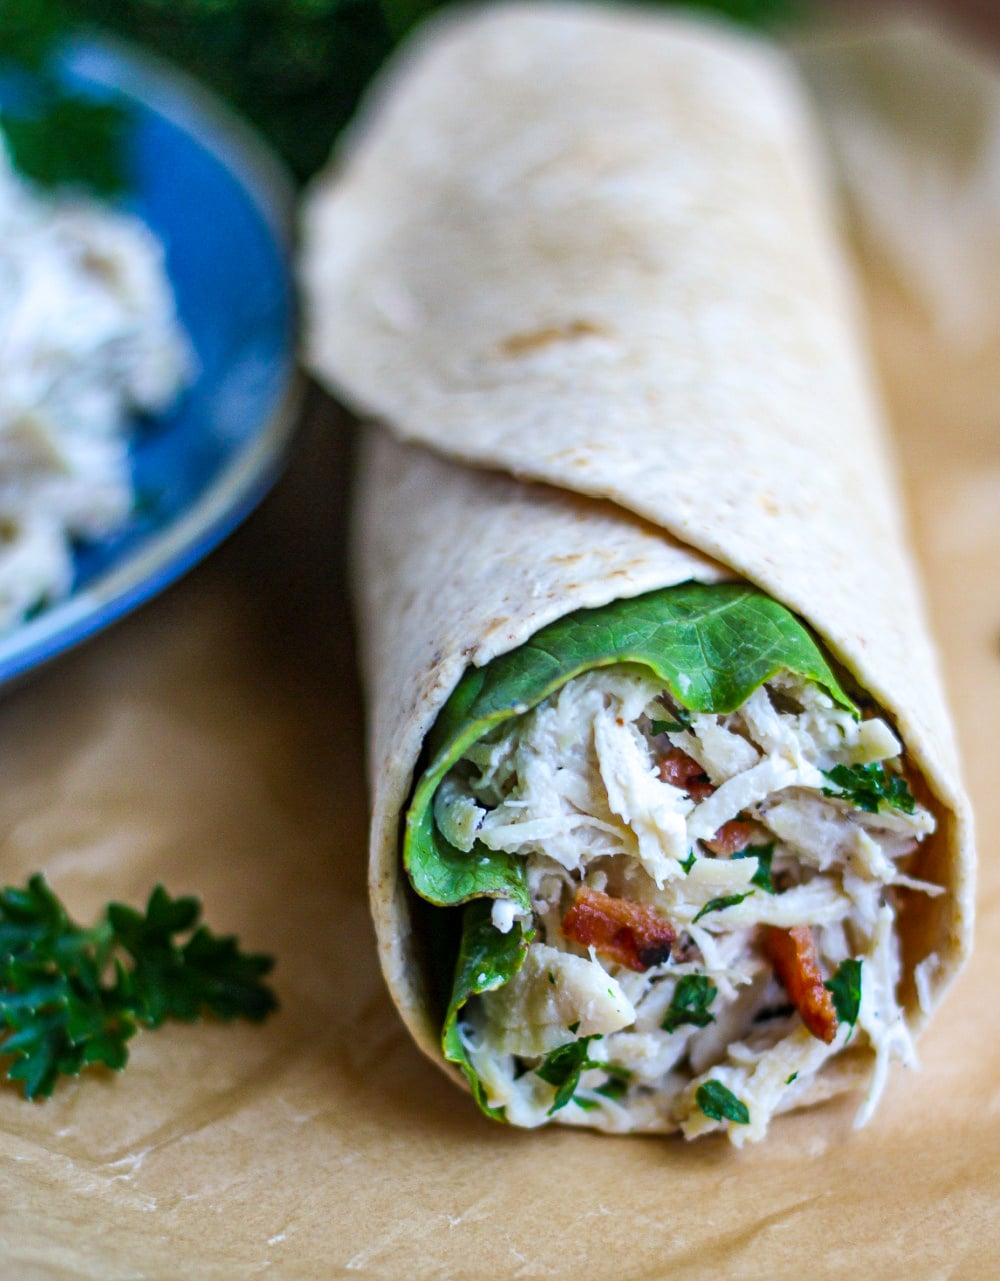 A single Caesar Chicken Wrap on brown parchment paper next to a blue bowl.